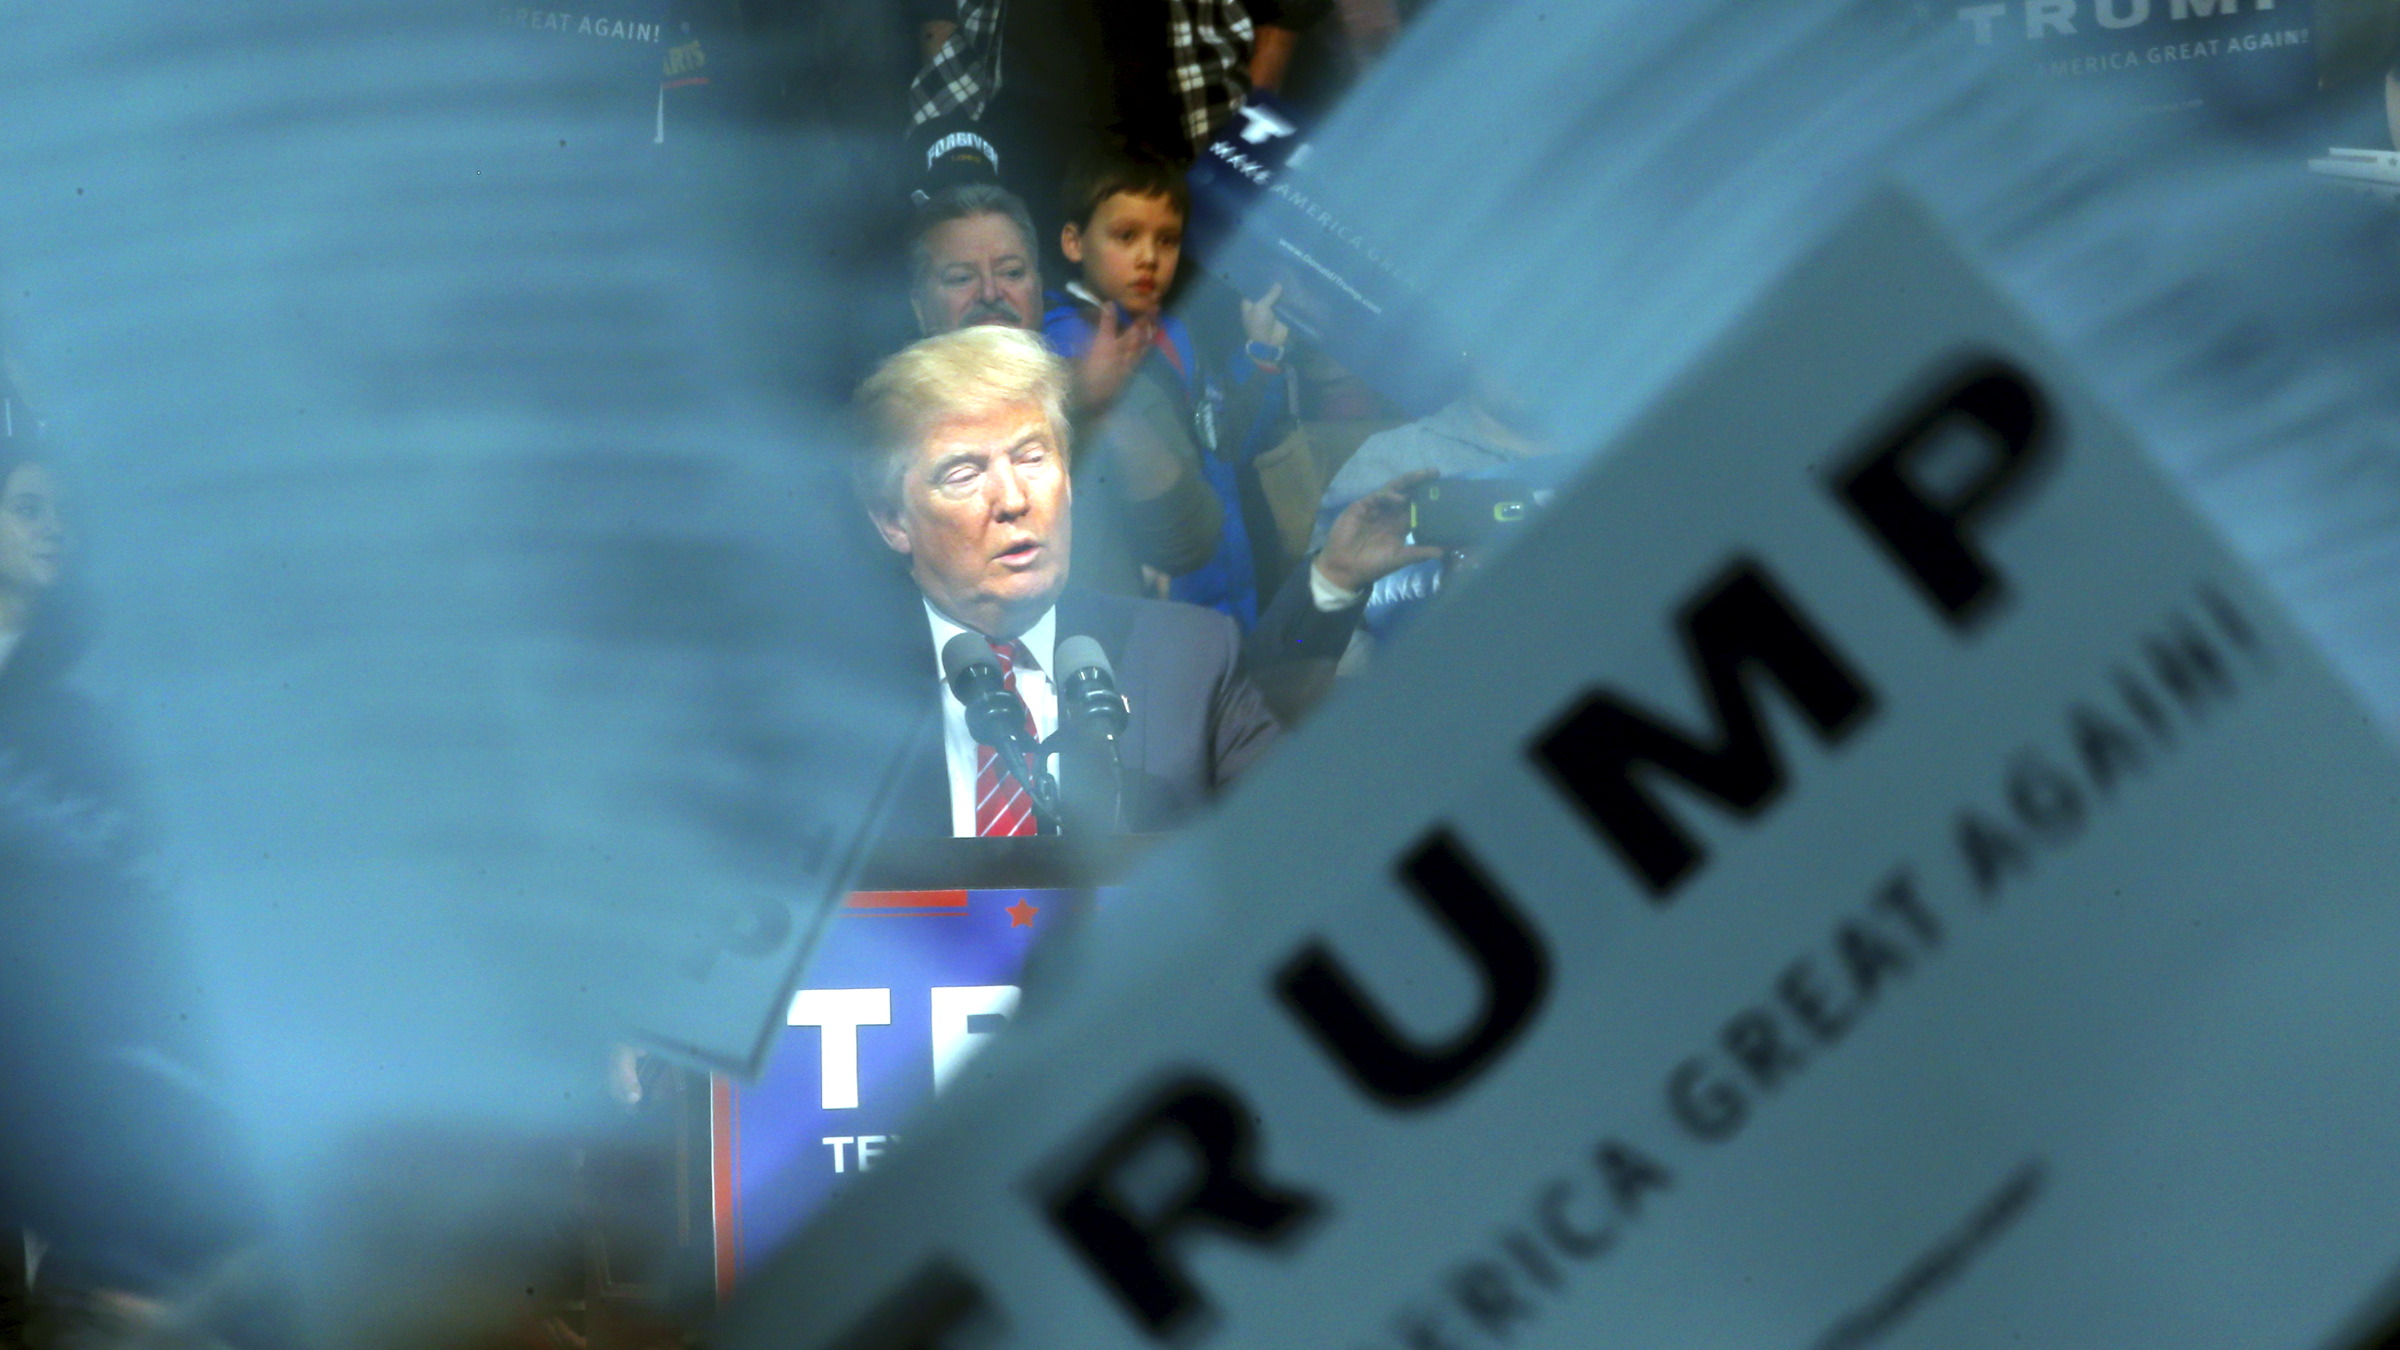 Republican U.S. presidential candidate Donald Trump speaks to supporters during a campaign rally in Warren, Michigan, March 4, 2016.